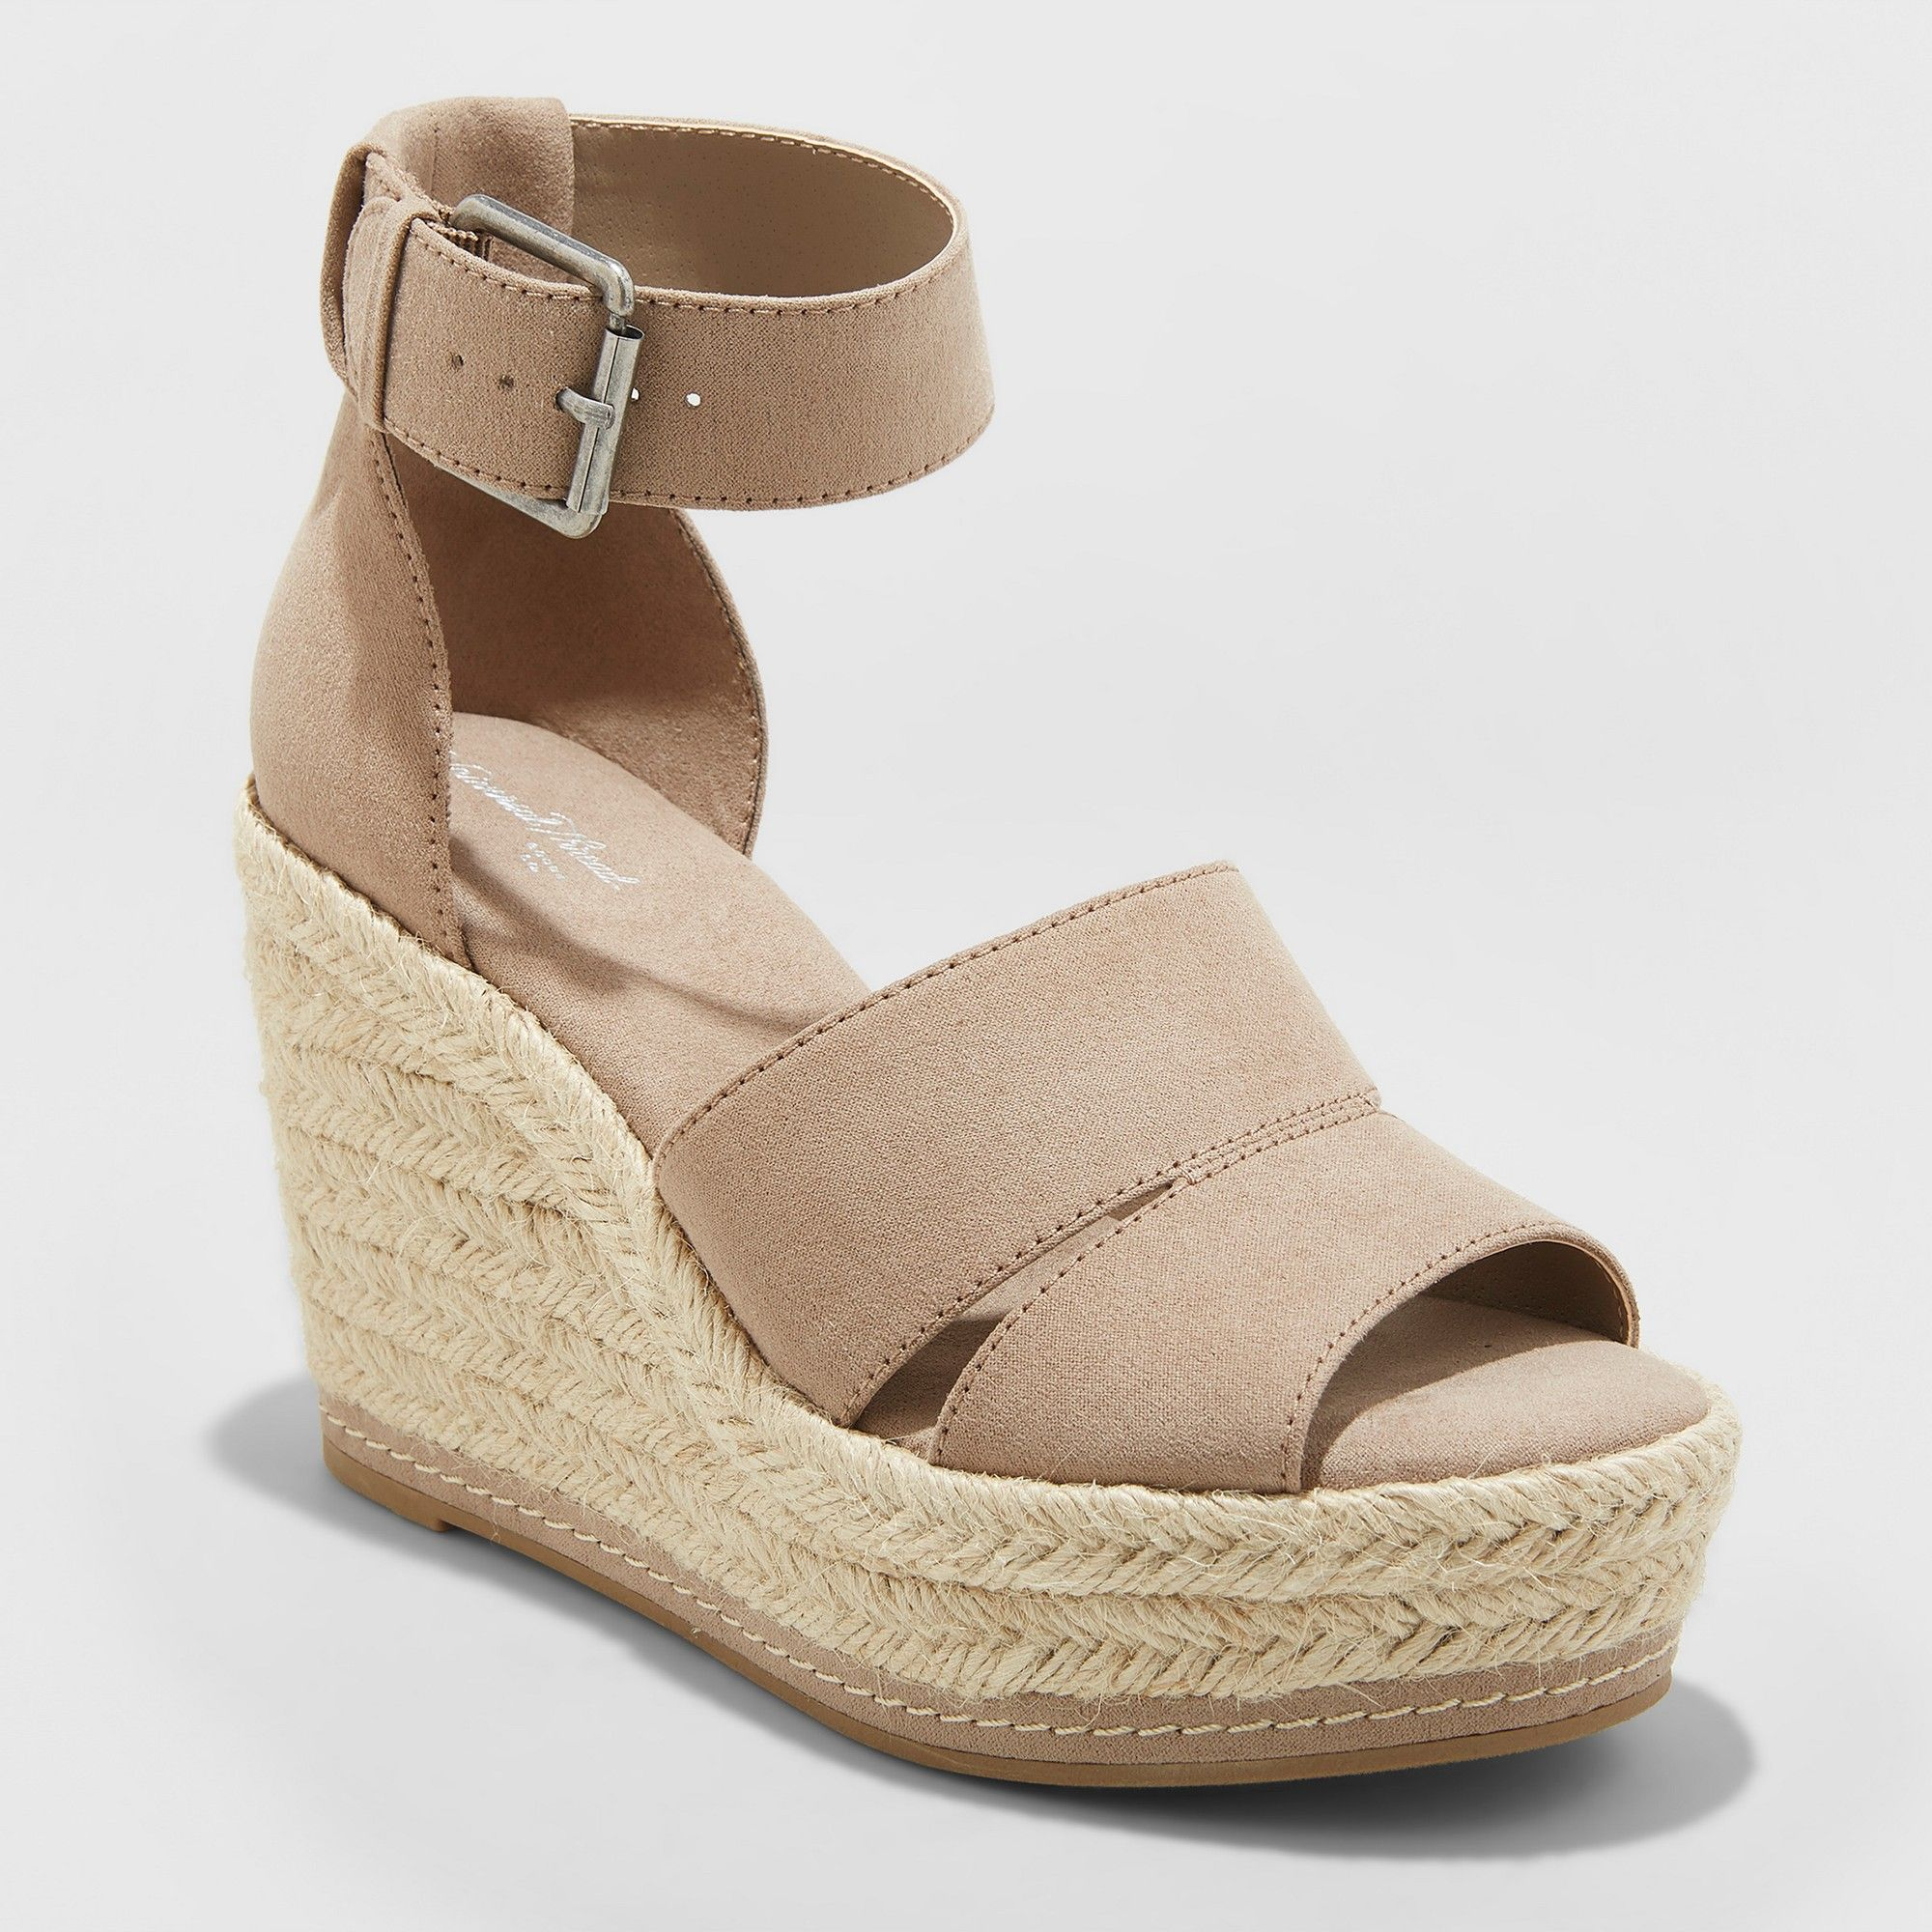 4d04fbe2e58 Women s Caroline Wide Width Microsuede Ankle Strap Espadrille Wedge -  Universal Thread Taupe (Brown) 12W